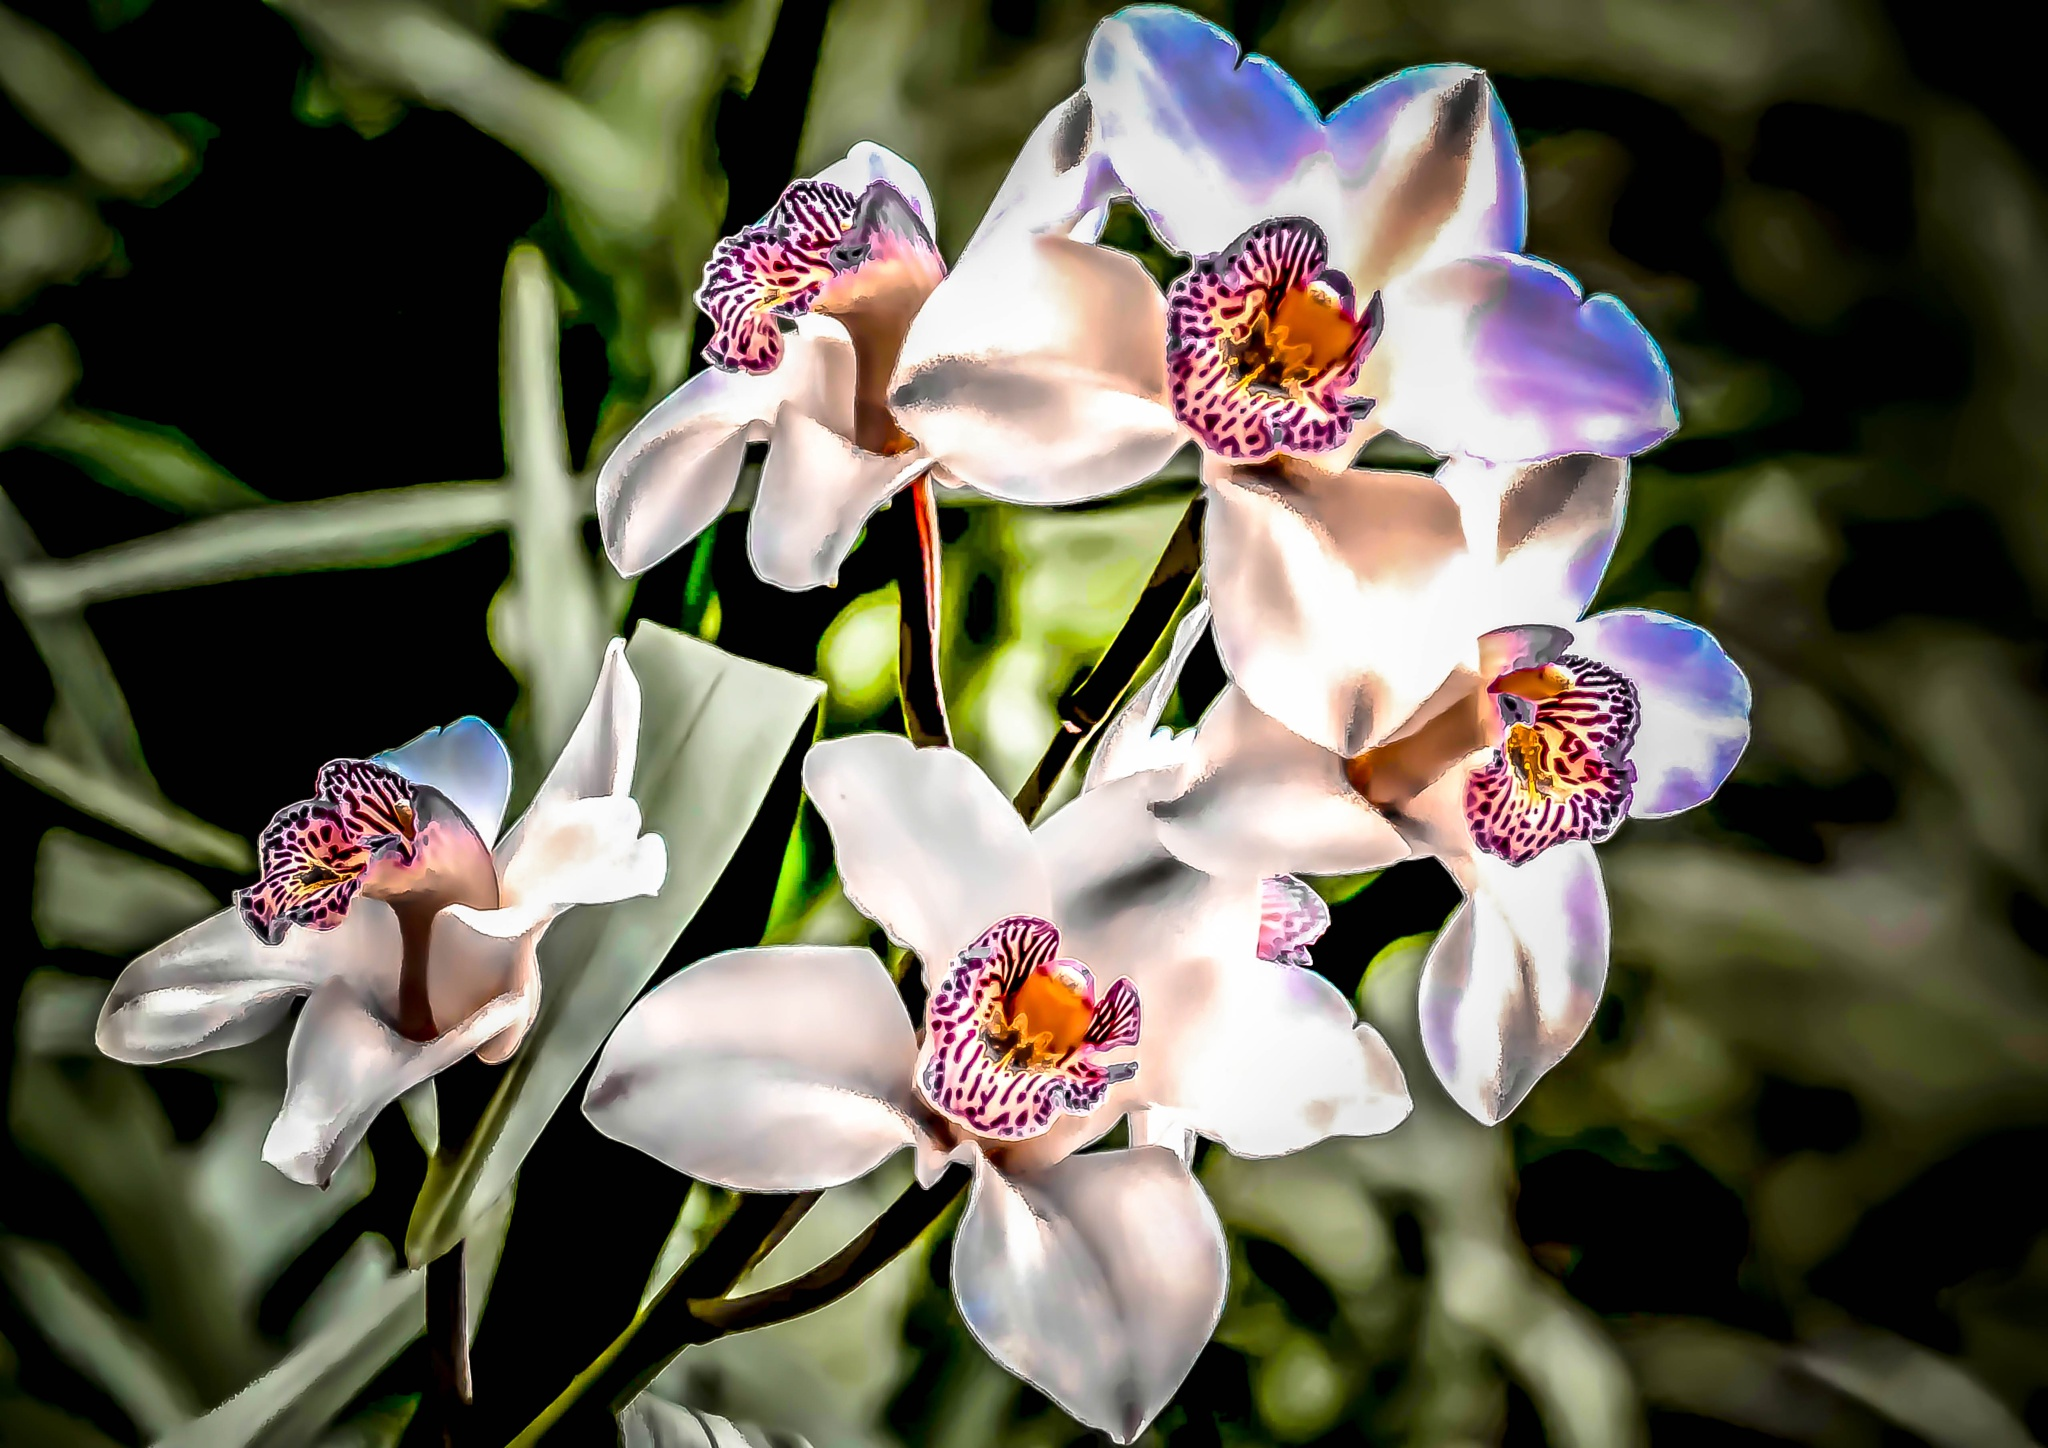 My wonderfull orchid by ilseBodewes